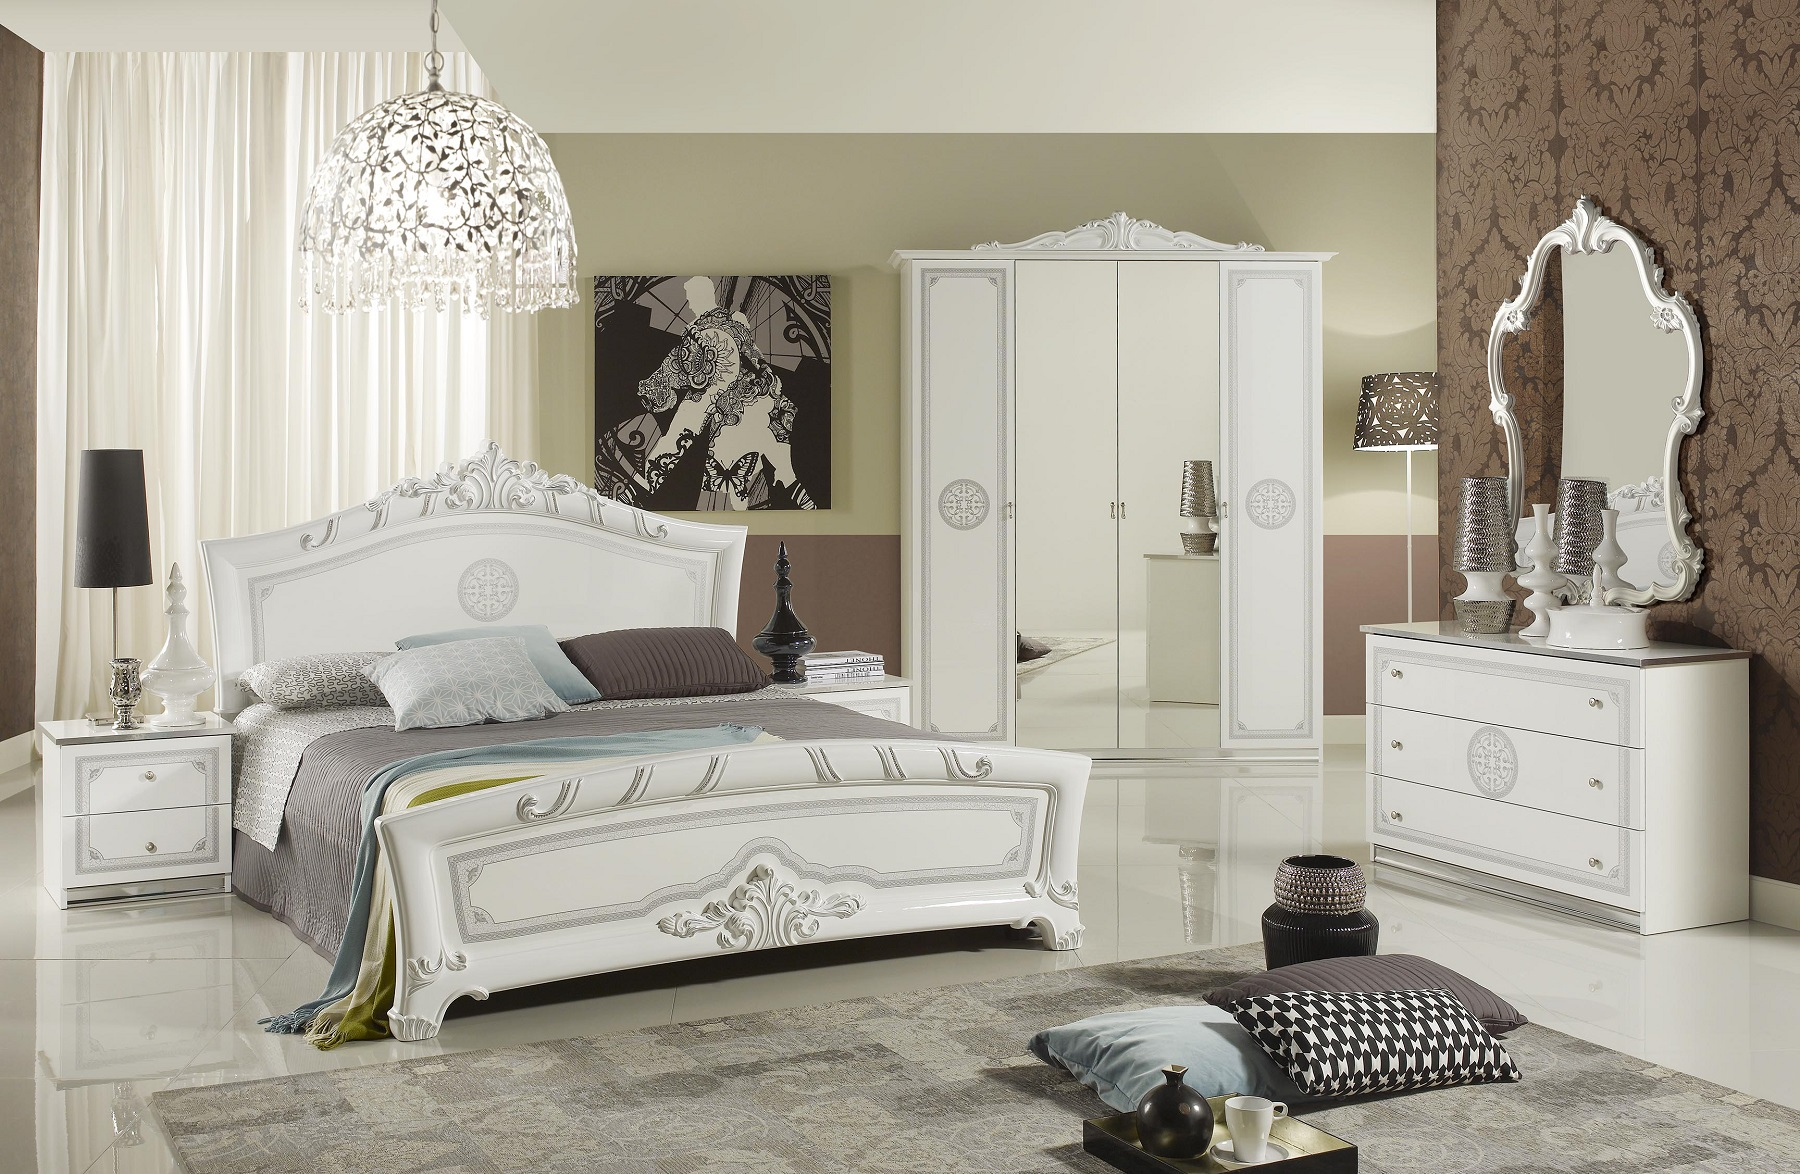 kommode great weiss silber klassik barock italienische. Black Bedroom Furniture Sets. Home Design Ideas